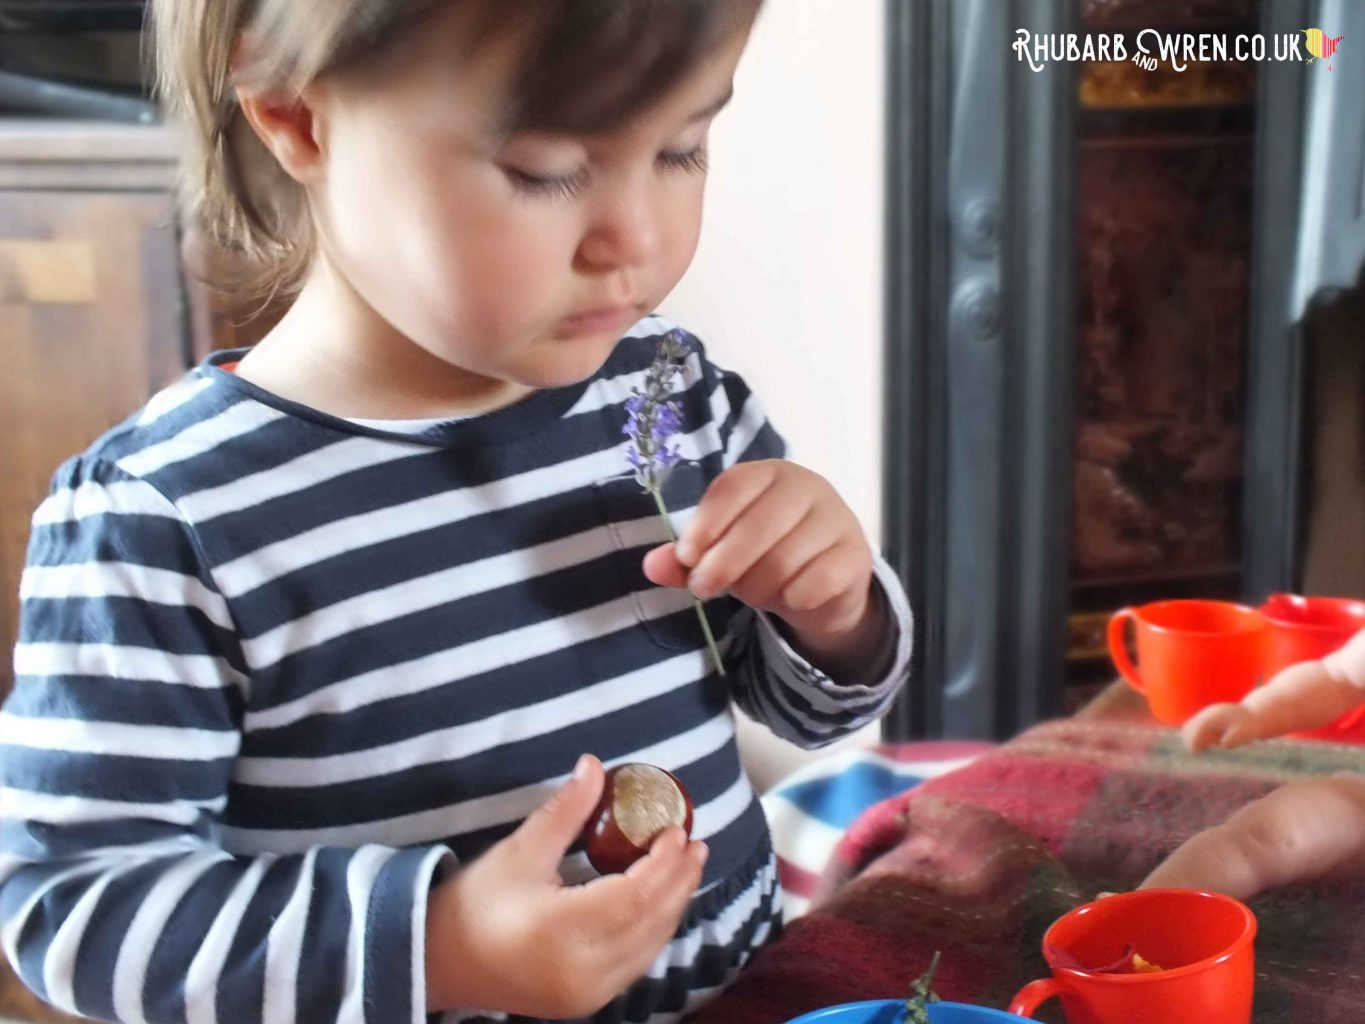 Toddler smelling lavender with eyes closed